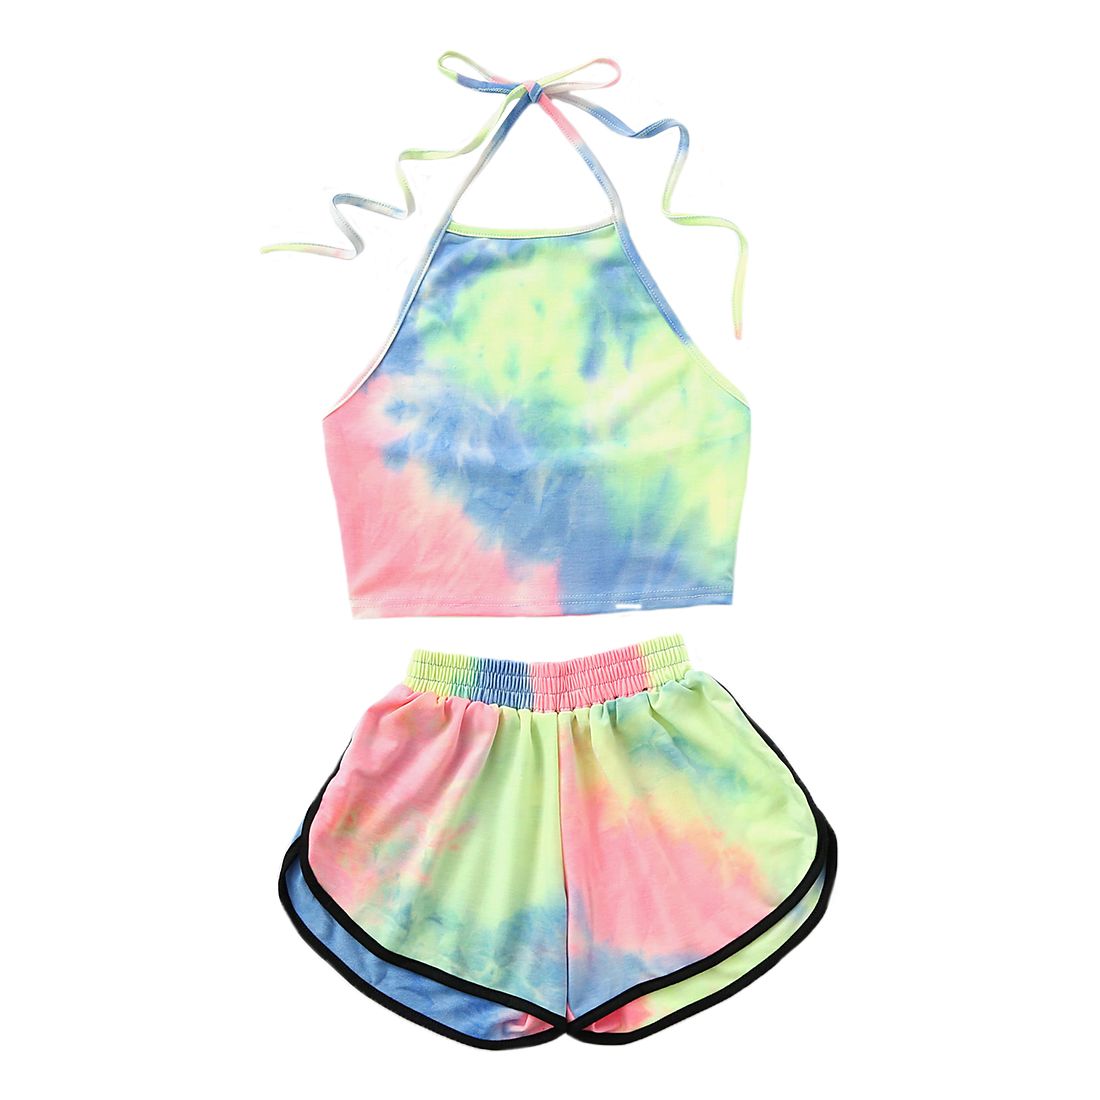 FASHION Women 2 Pieces Suit Set Summer Holiday Beach Wear Halter Blooming Color Crop Top With Shorts two piece set